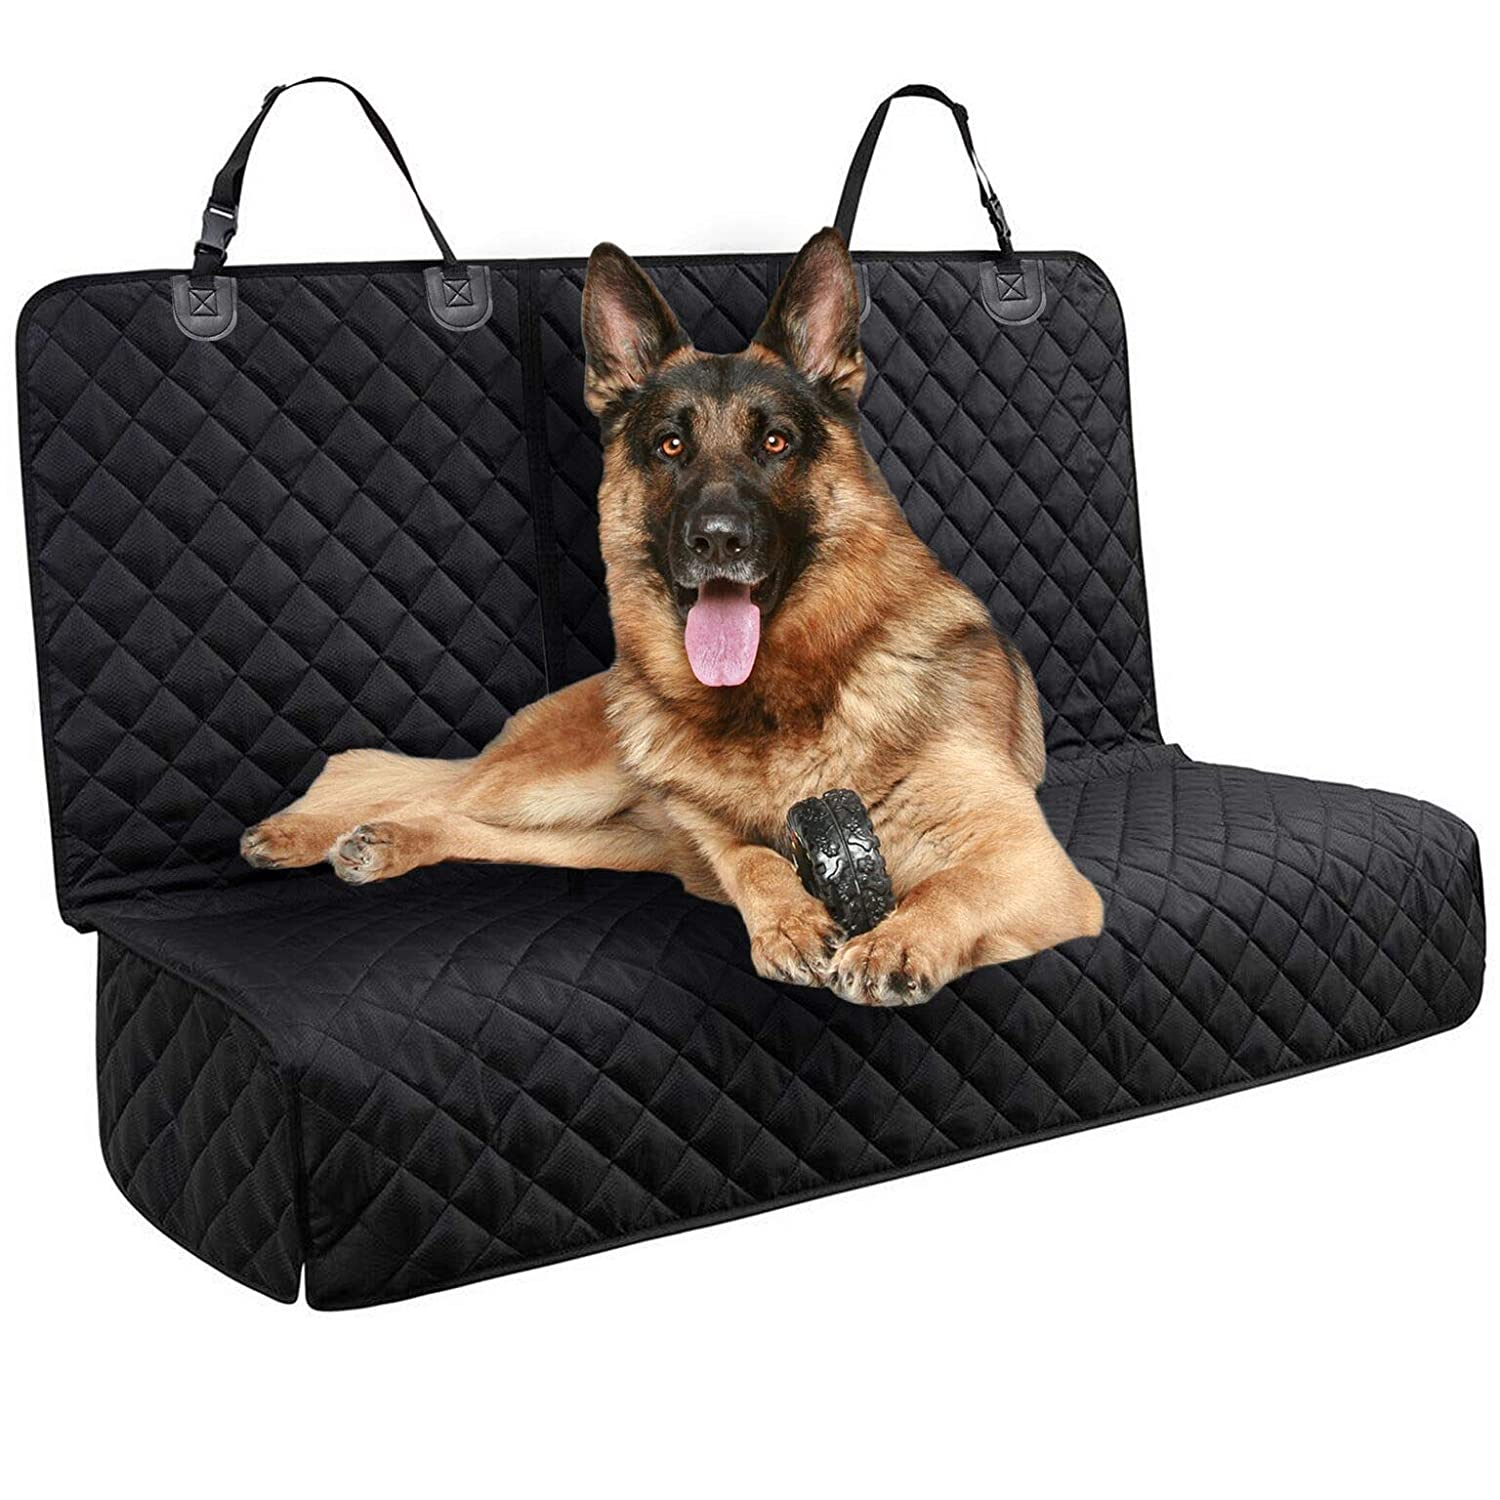 DakPets Dog Car Seat Covers – Pet Car Seat Cover Protector Waterproof, Scratch Proof, Heavy Duty and Nonslip Pet Bench Seat Cover – Middle Seat Belt Capable for Cars, Trucks and SUVs